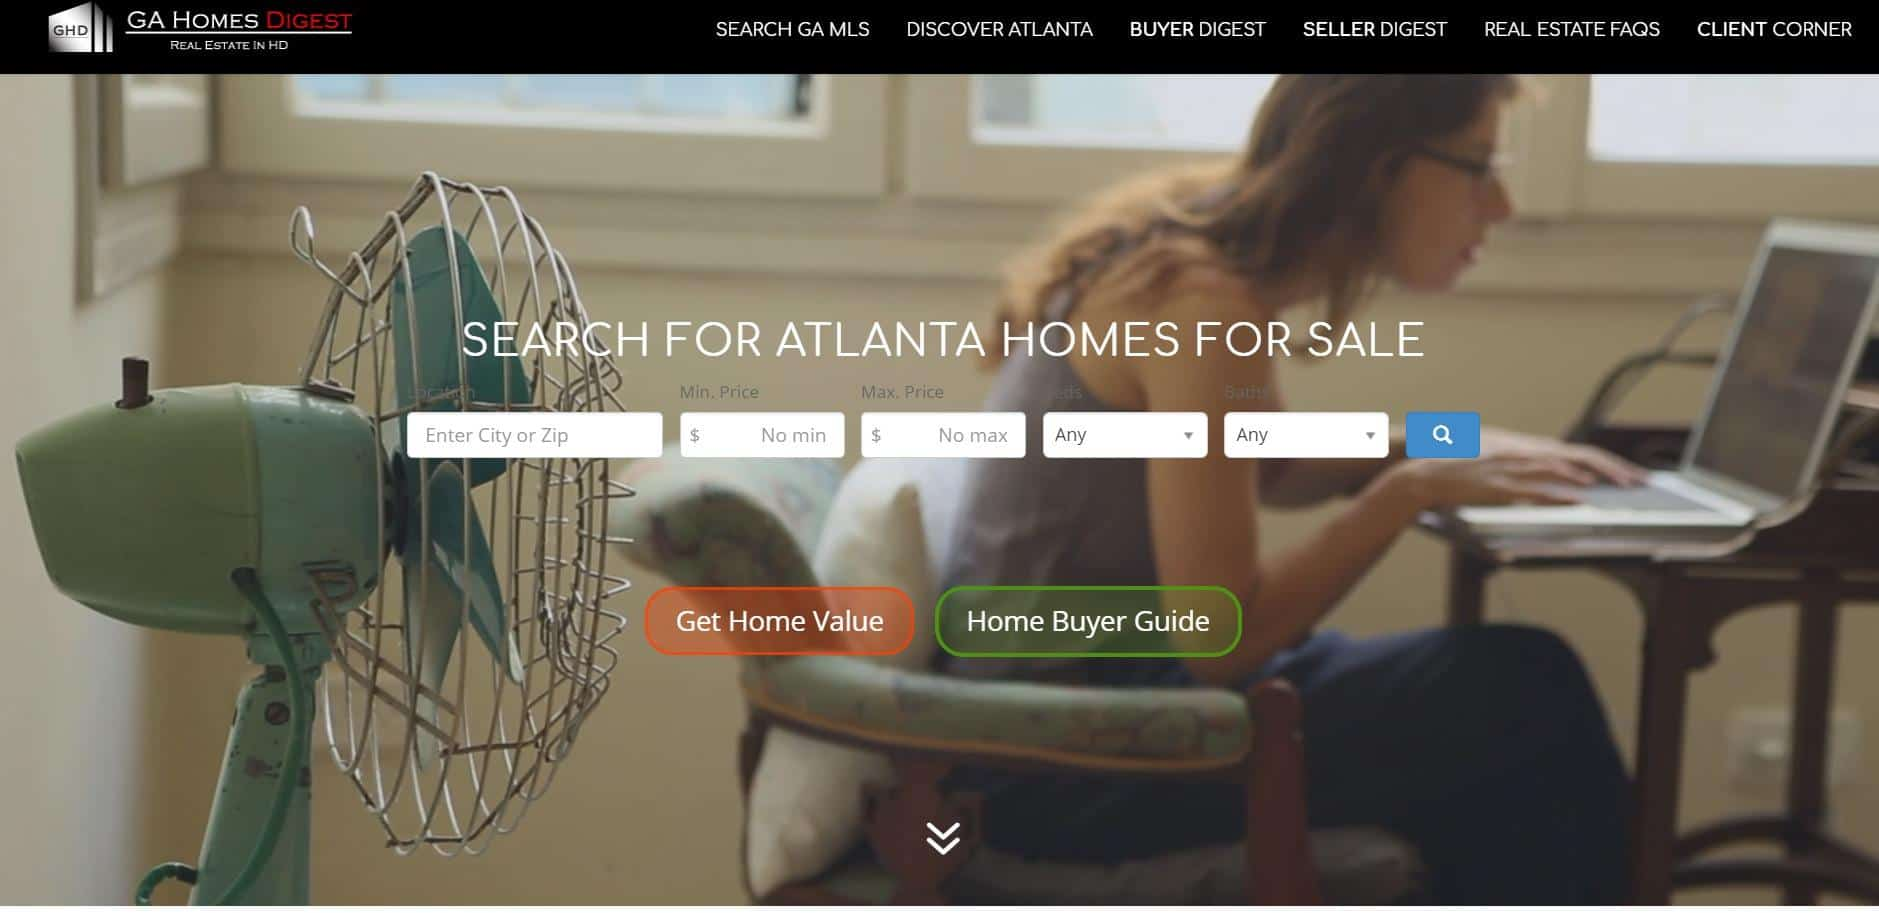 Real Estate Websites For Top Agents